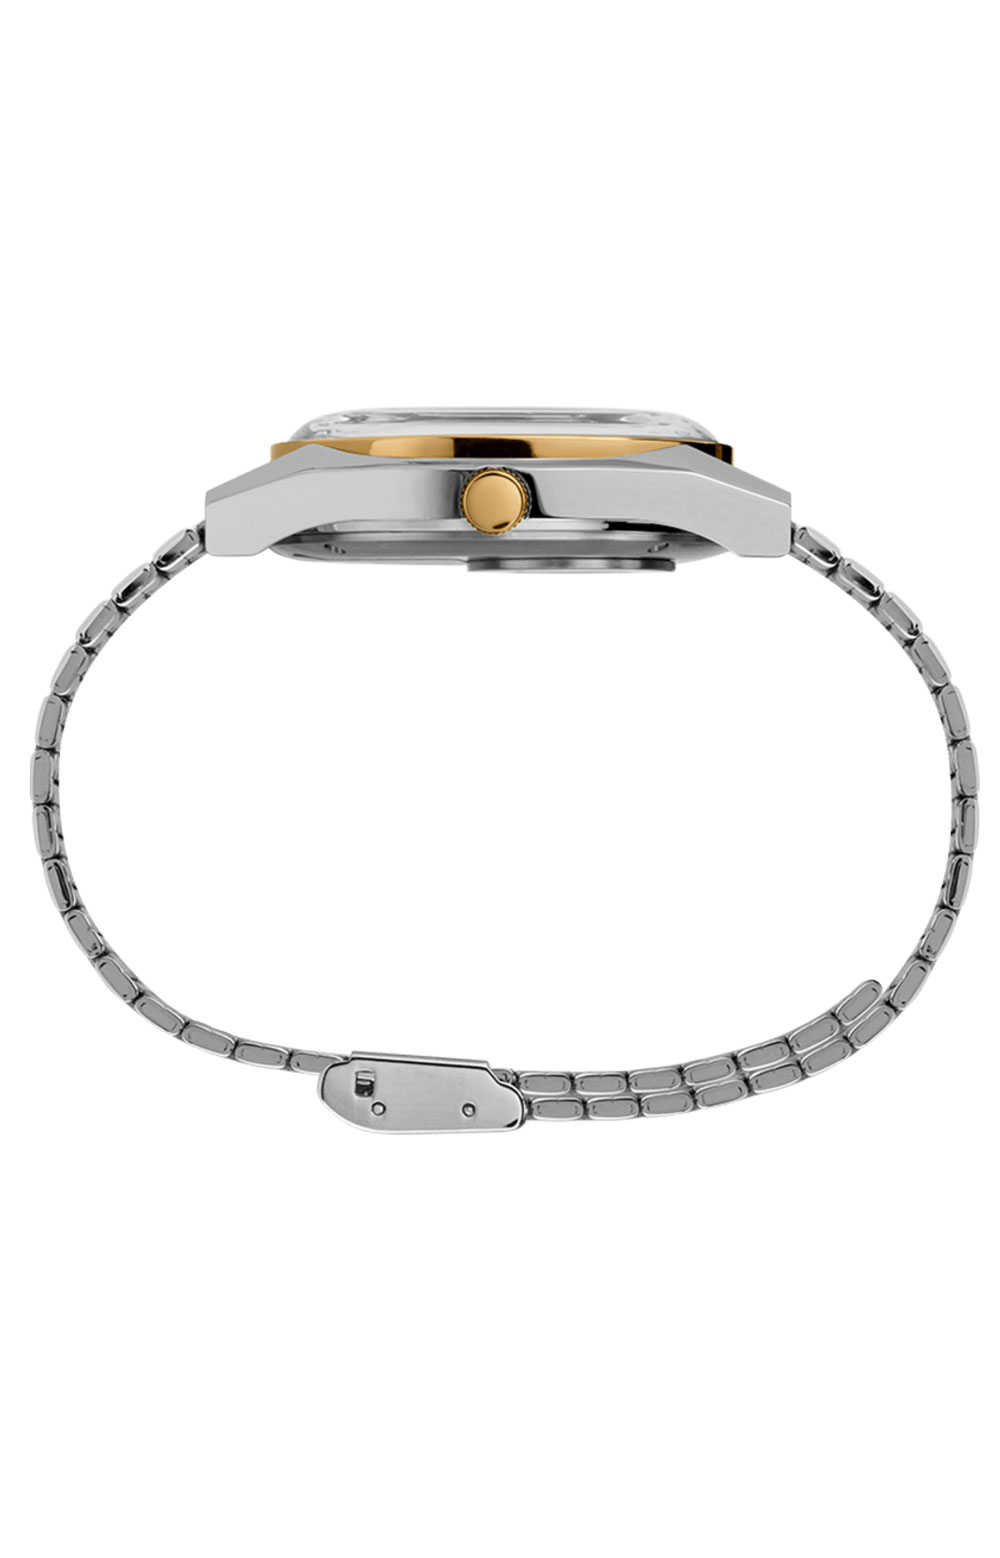 (TW2T80800ZV) Q Timex Reissue Falcon Eye 38mm Stainless Steel Bracelet Watch - Stainless Stee 2